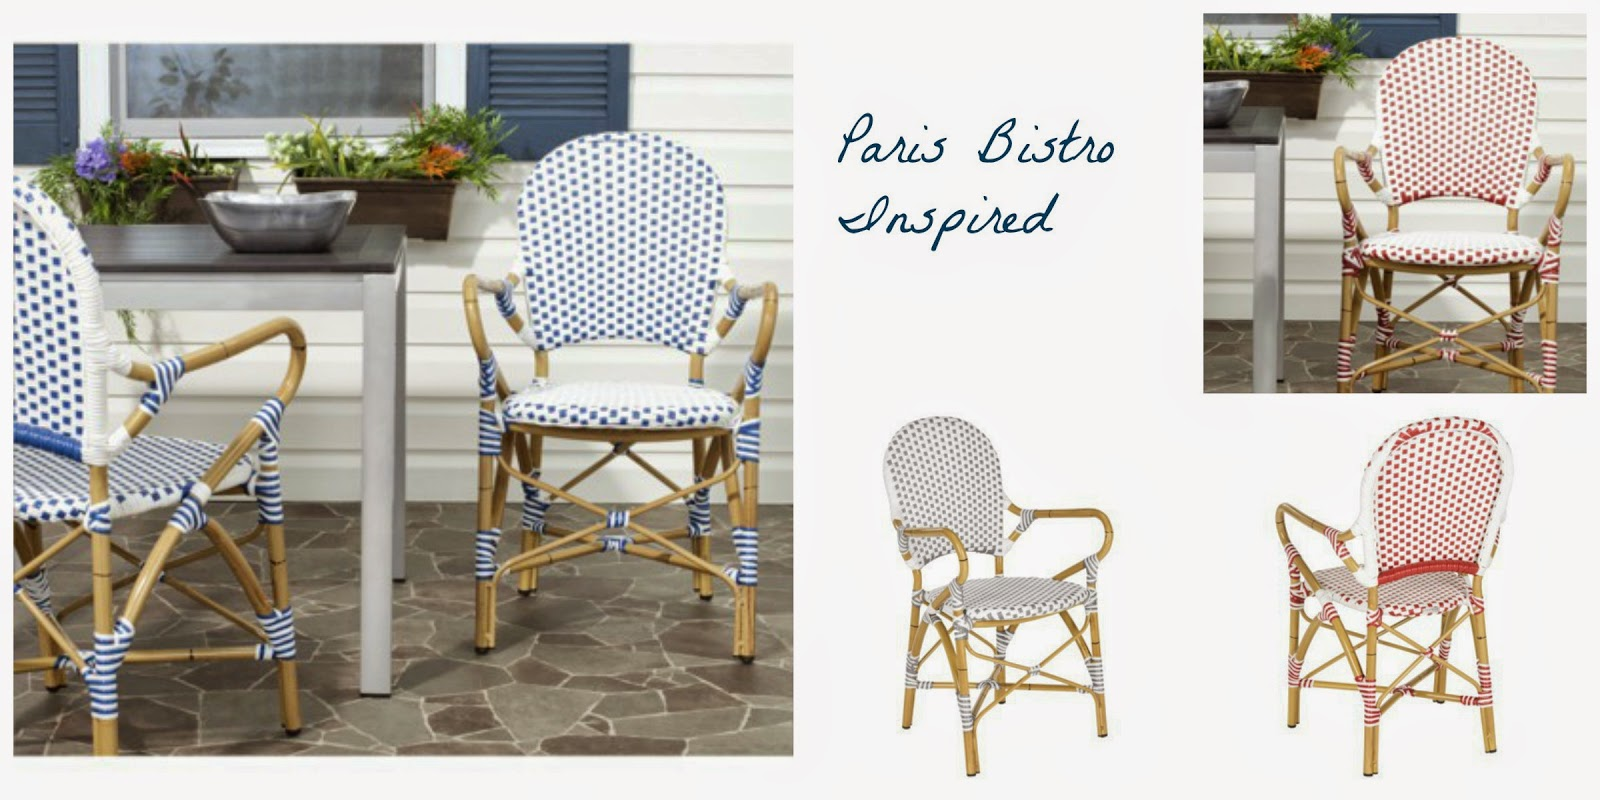 Wicker Patio Bistro Style Chairs Via Target